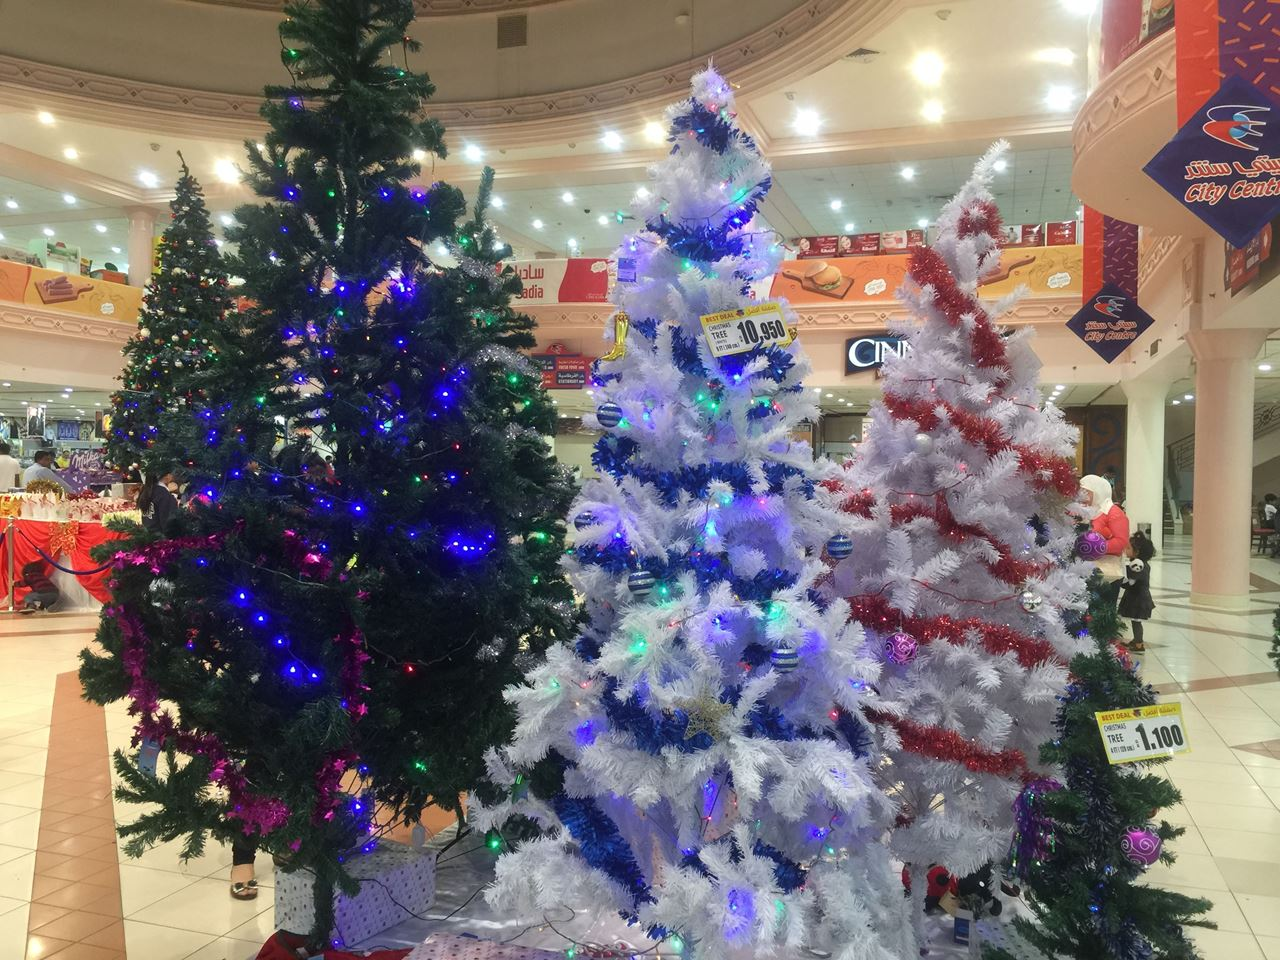 Christmas trees with different colors and sizes